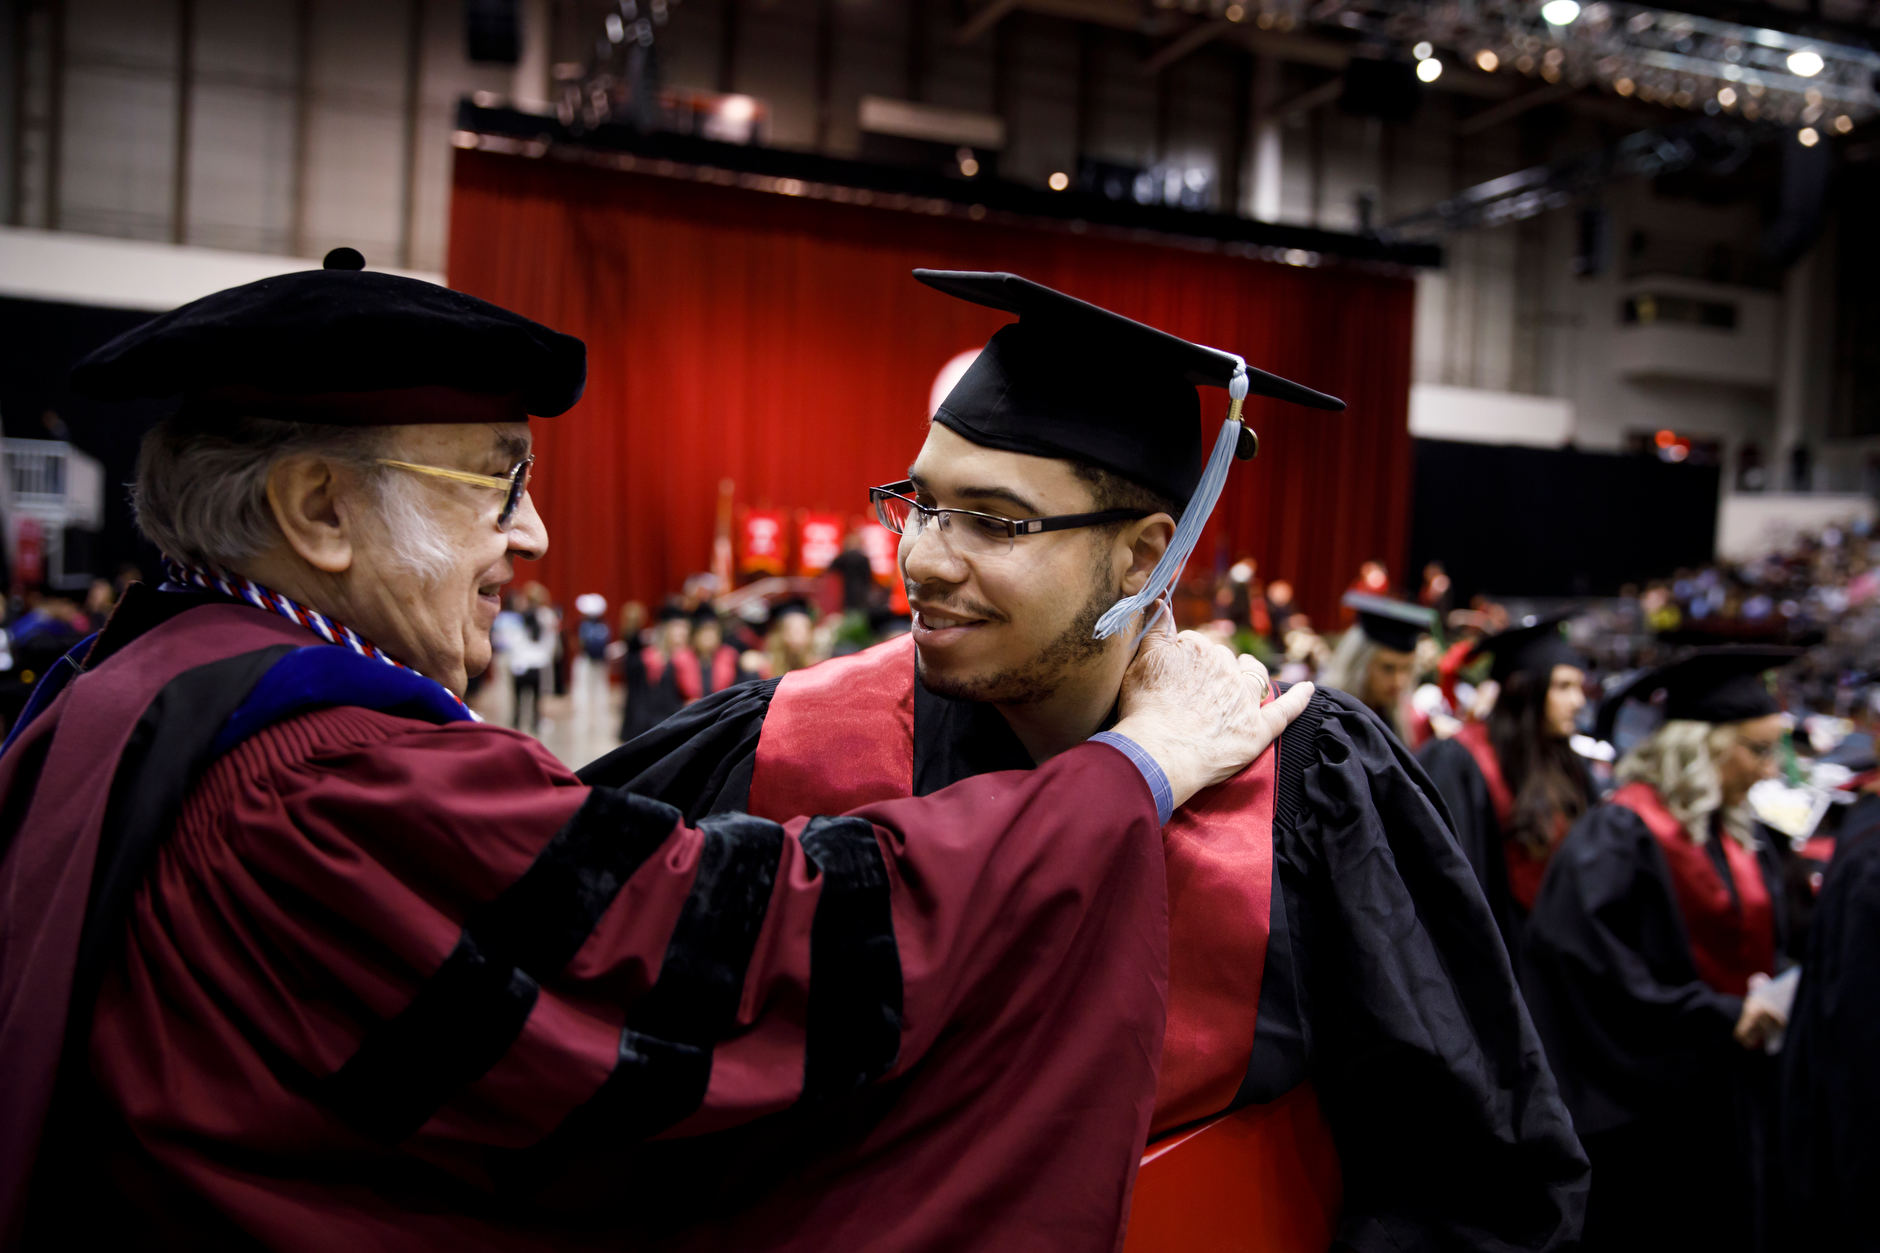 A graduate hugs a faculty member during the Indiana University Northwest Commencement at the Genesis Convention Center on Thursday, May 9, 2019. (James Brosher/Indiana University)